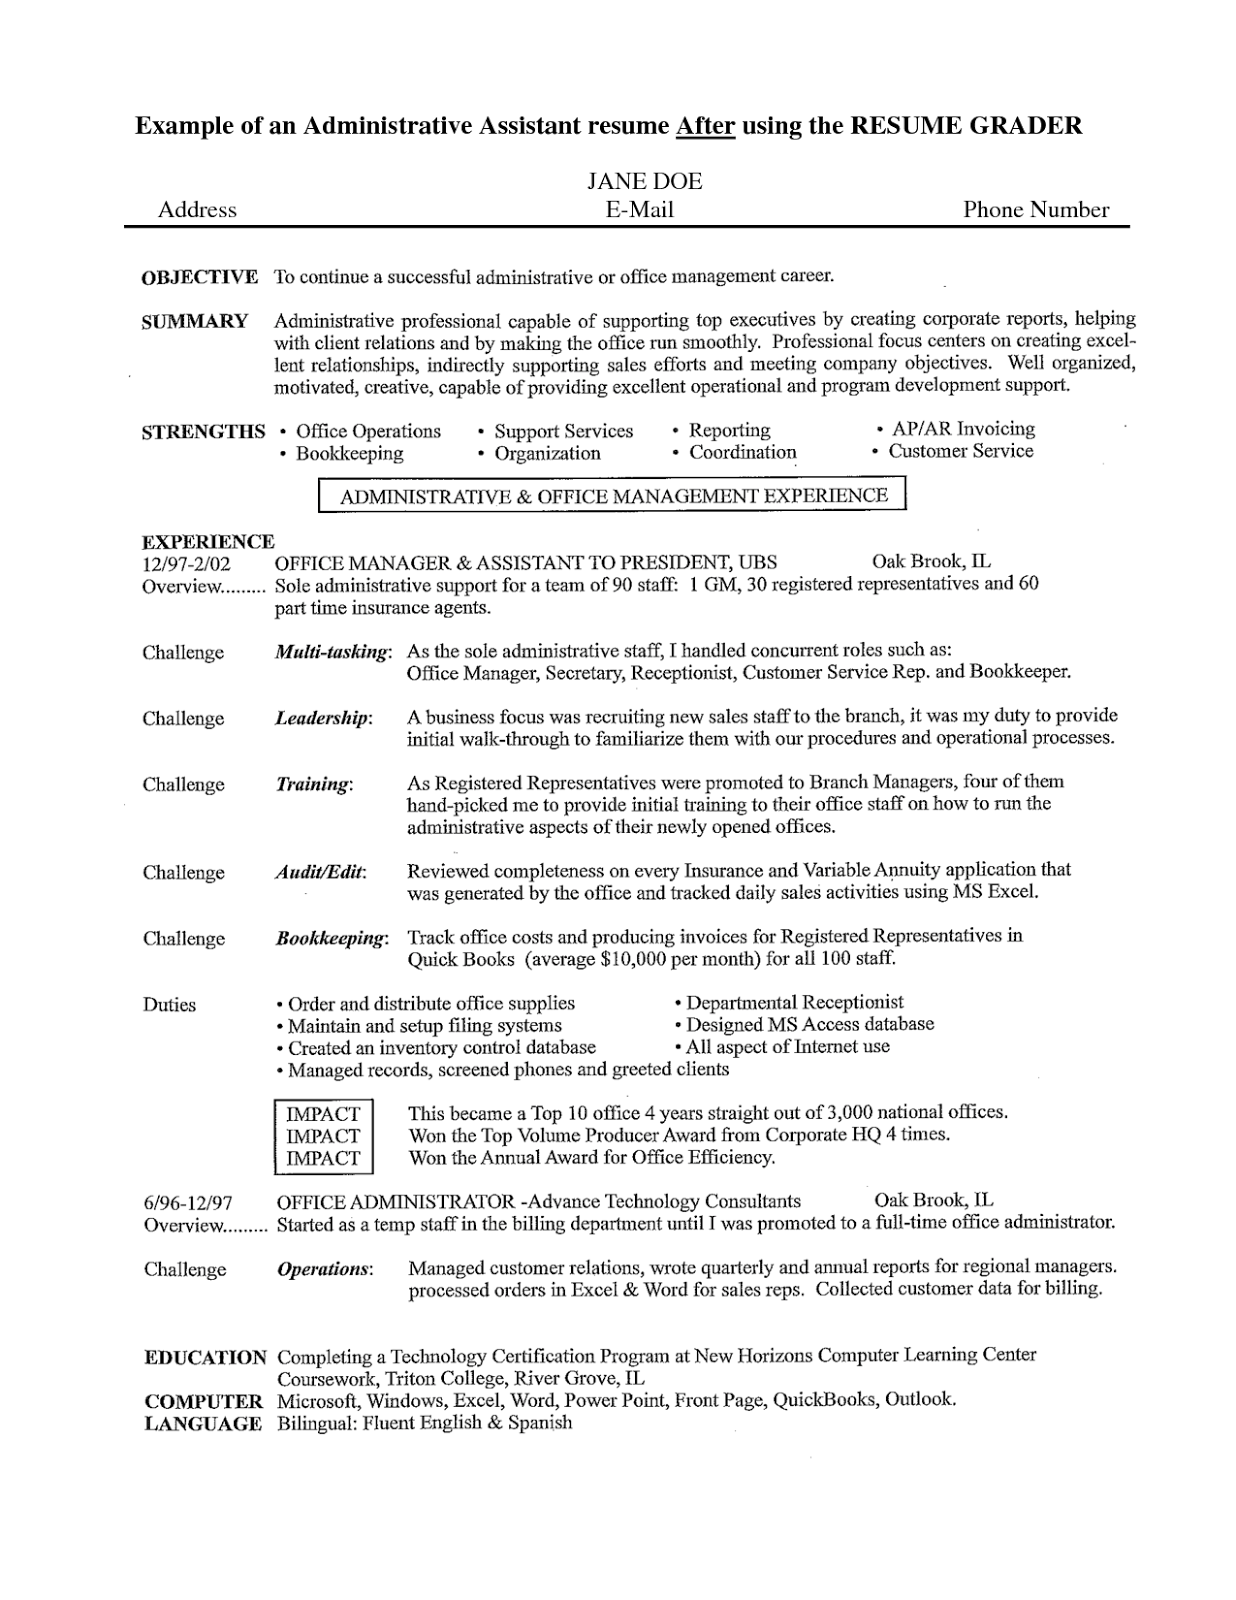 My Objective On A Resume Sample Objective On Resume For Administrative Assistant